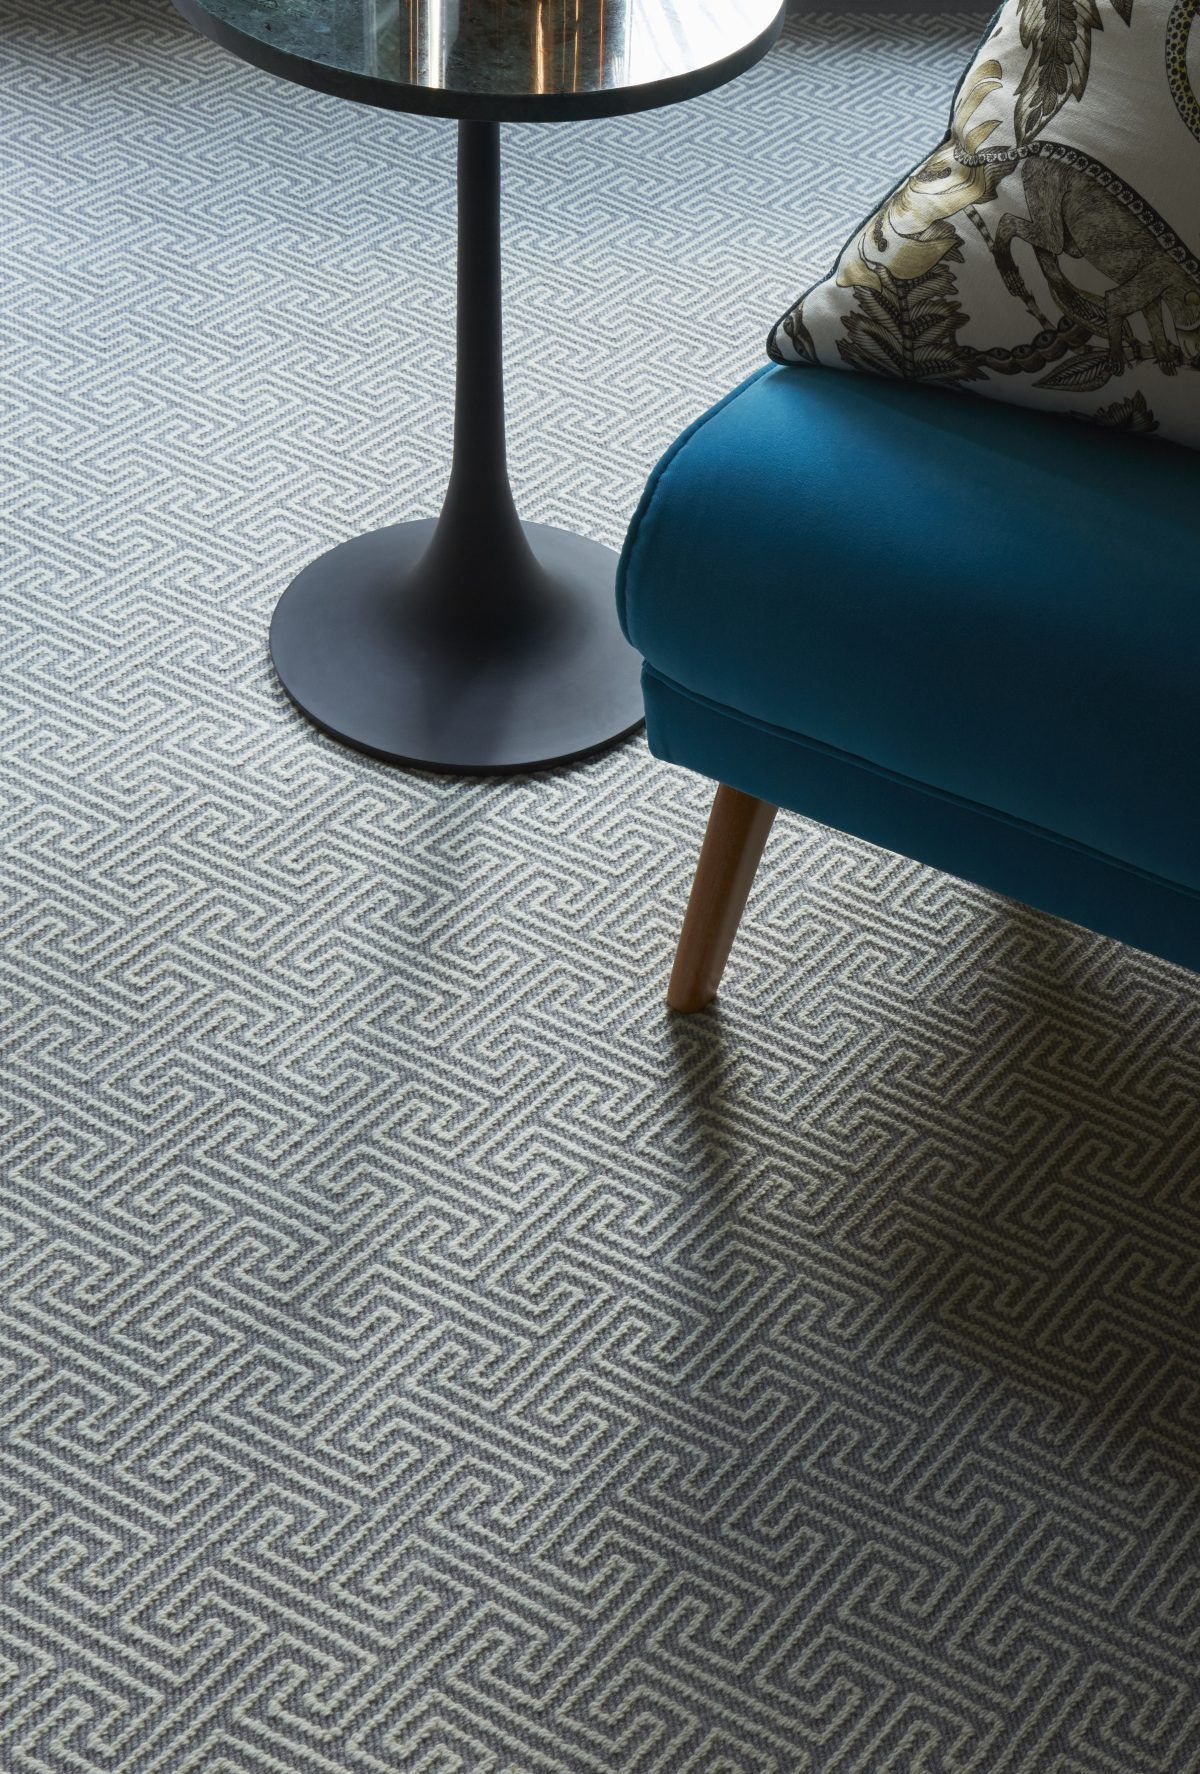 Shoreditch Design Rooms: DGM 210 JITTERBUG FOR AXMINSTER CARPETS Jitterbug From The